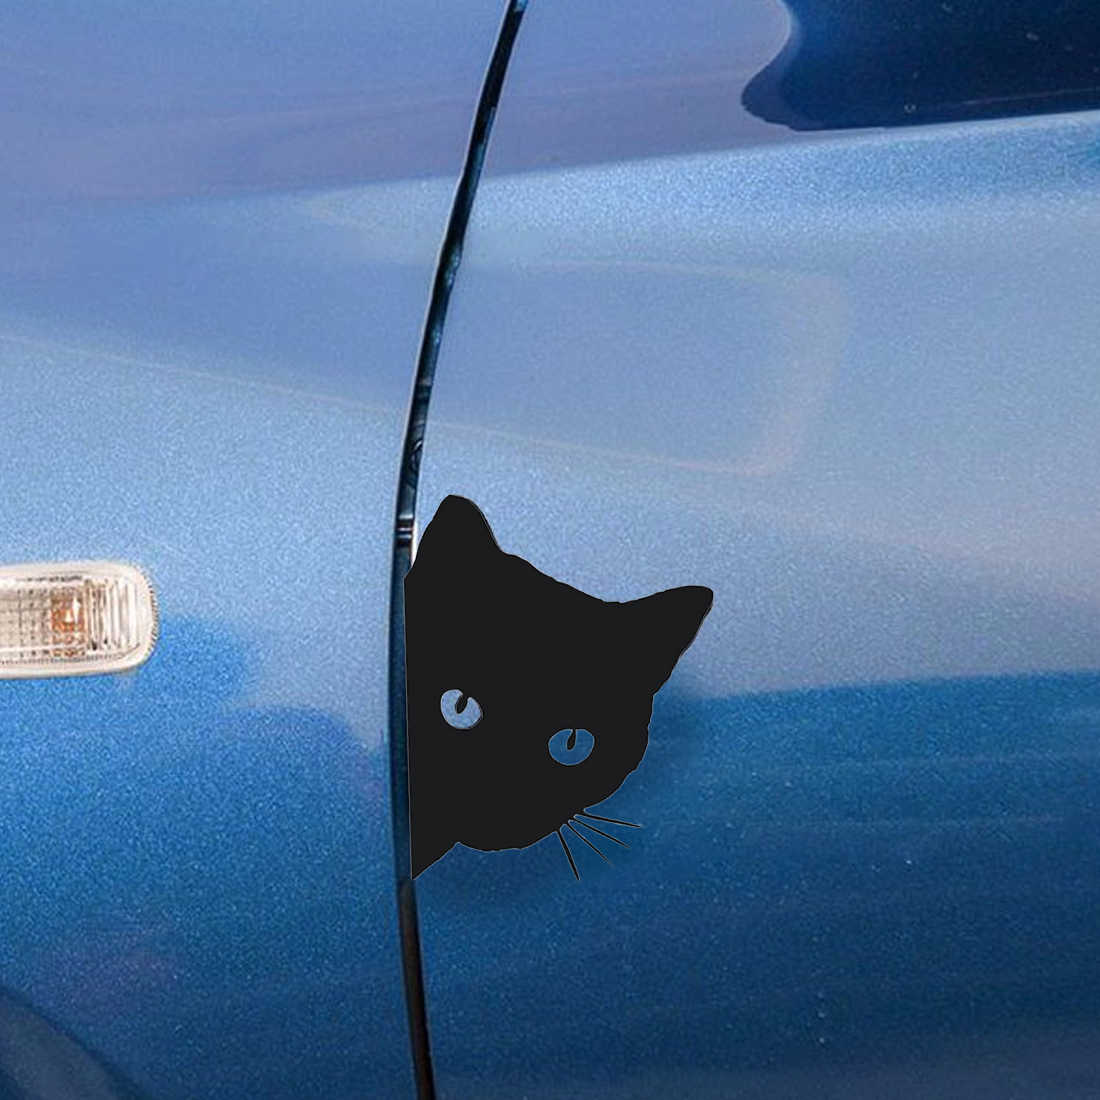 Dewtreetali 12*15 CM chat visage PEERING voiture autocollant décalcomanies Pet chat moto autocollants décoratifs voiture fenêtre décalcomanies